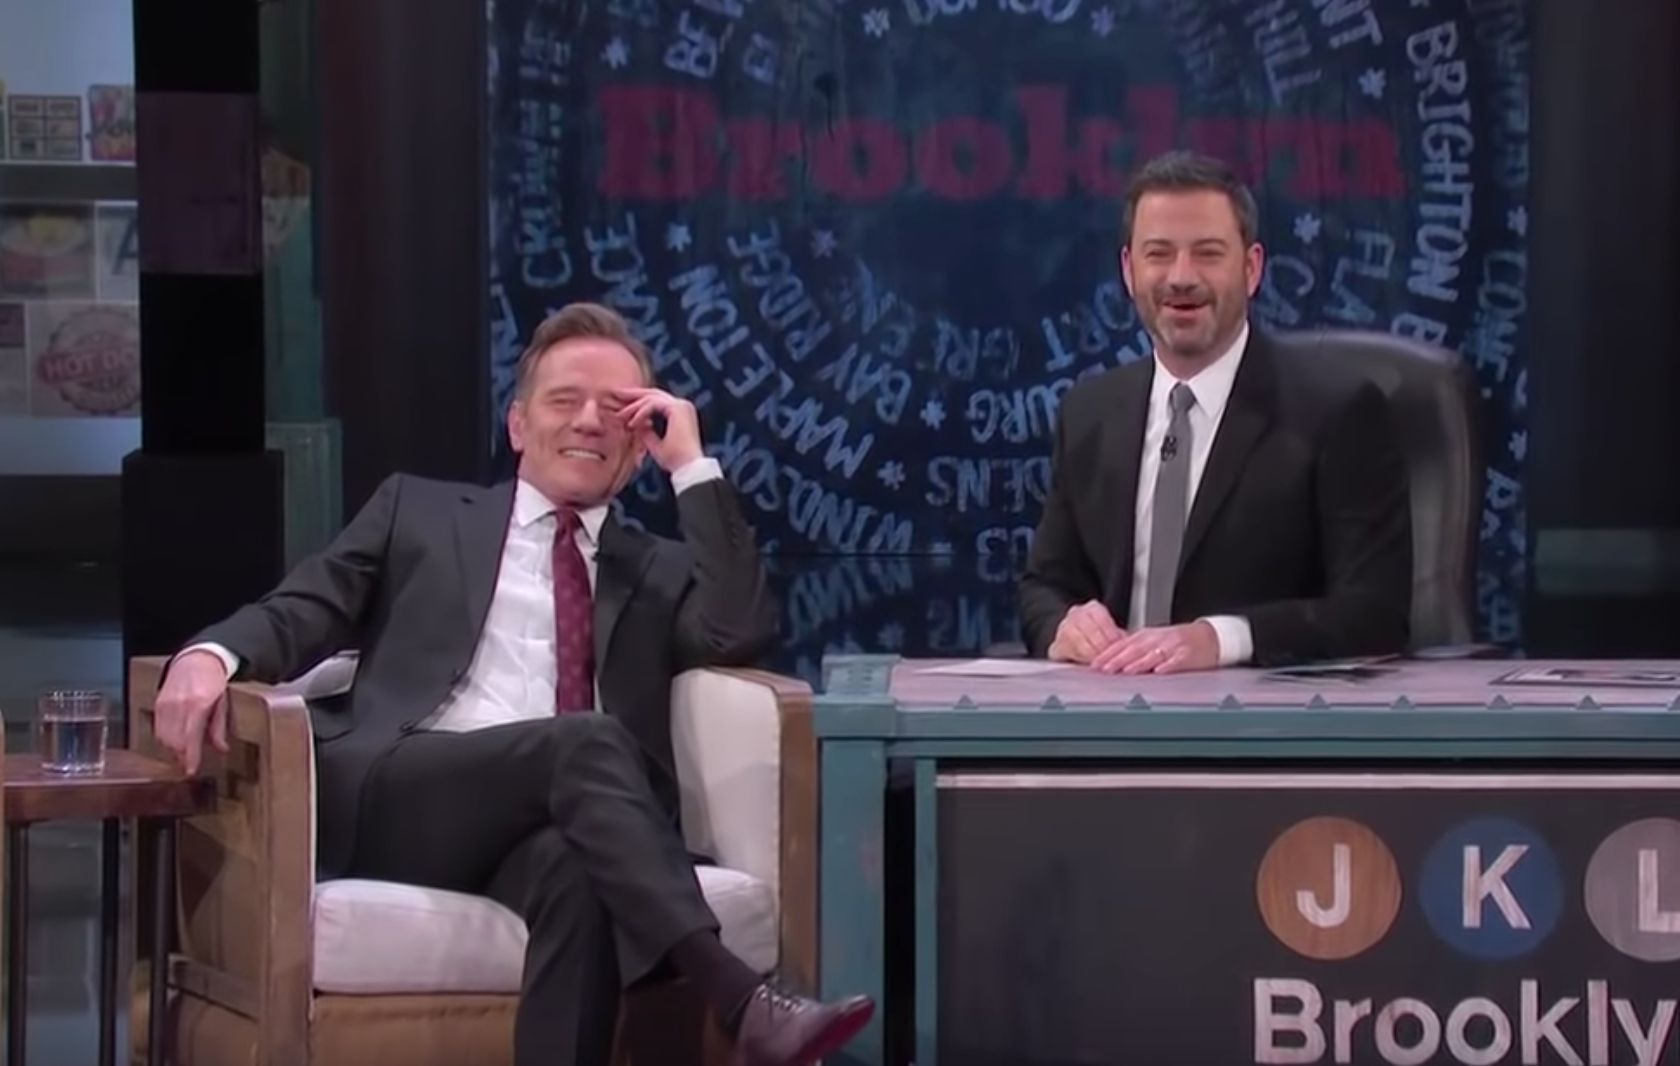 Jimmy Kimmel embarrasses Bryan Cranston with clip from actor's soap opera days.